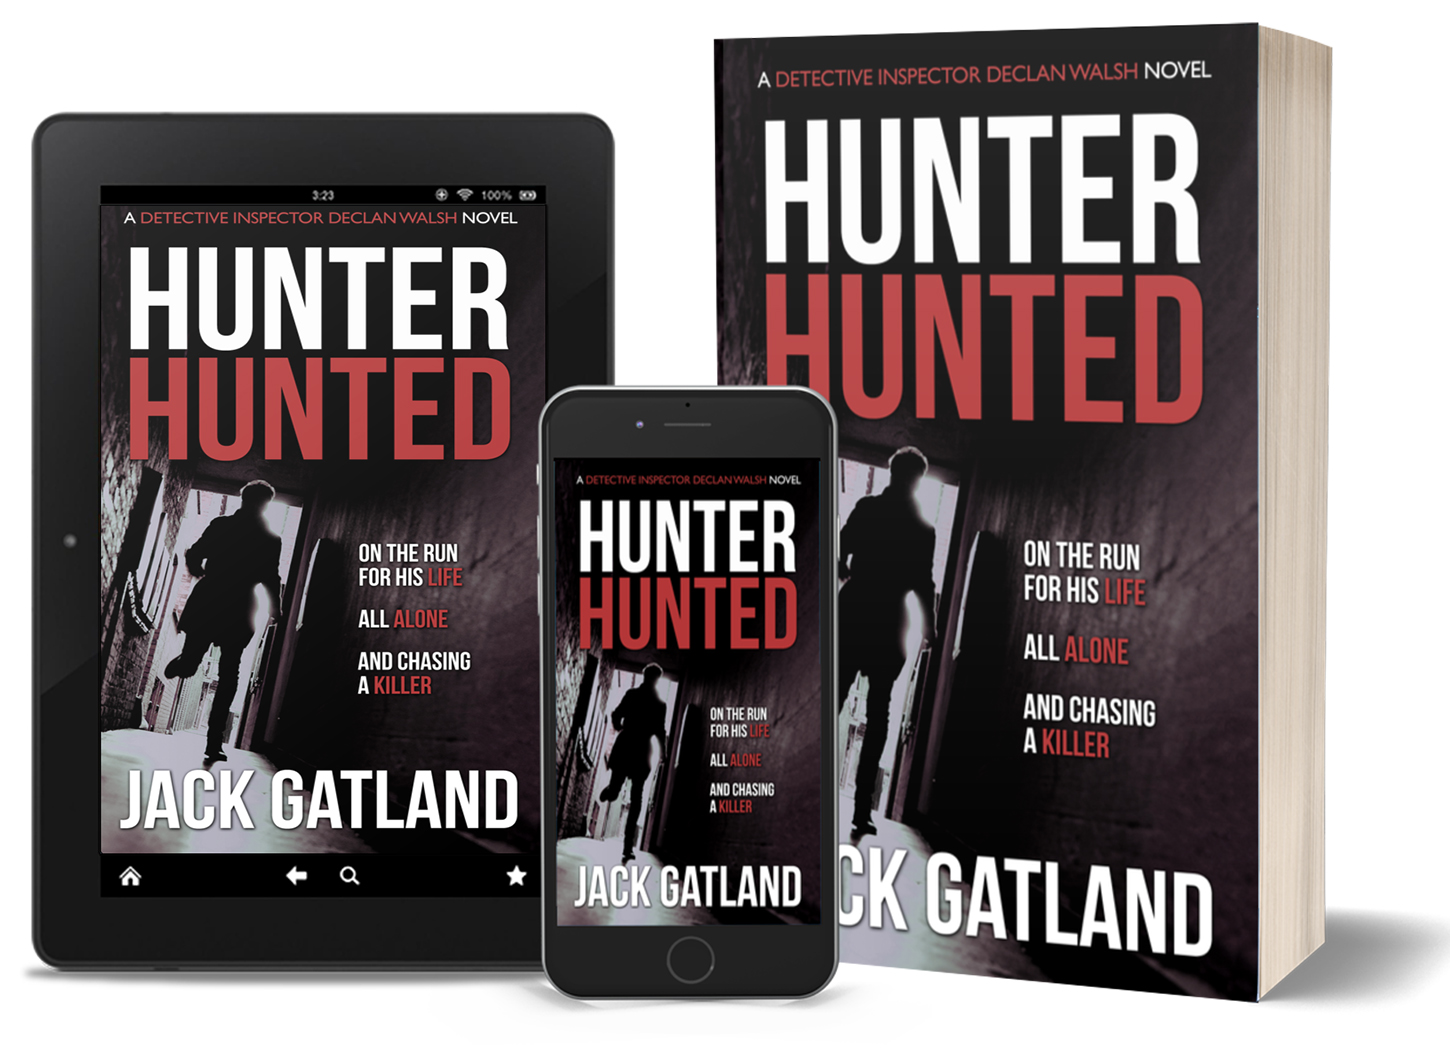 HUNTER HUNTED: available now